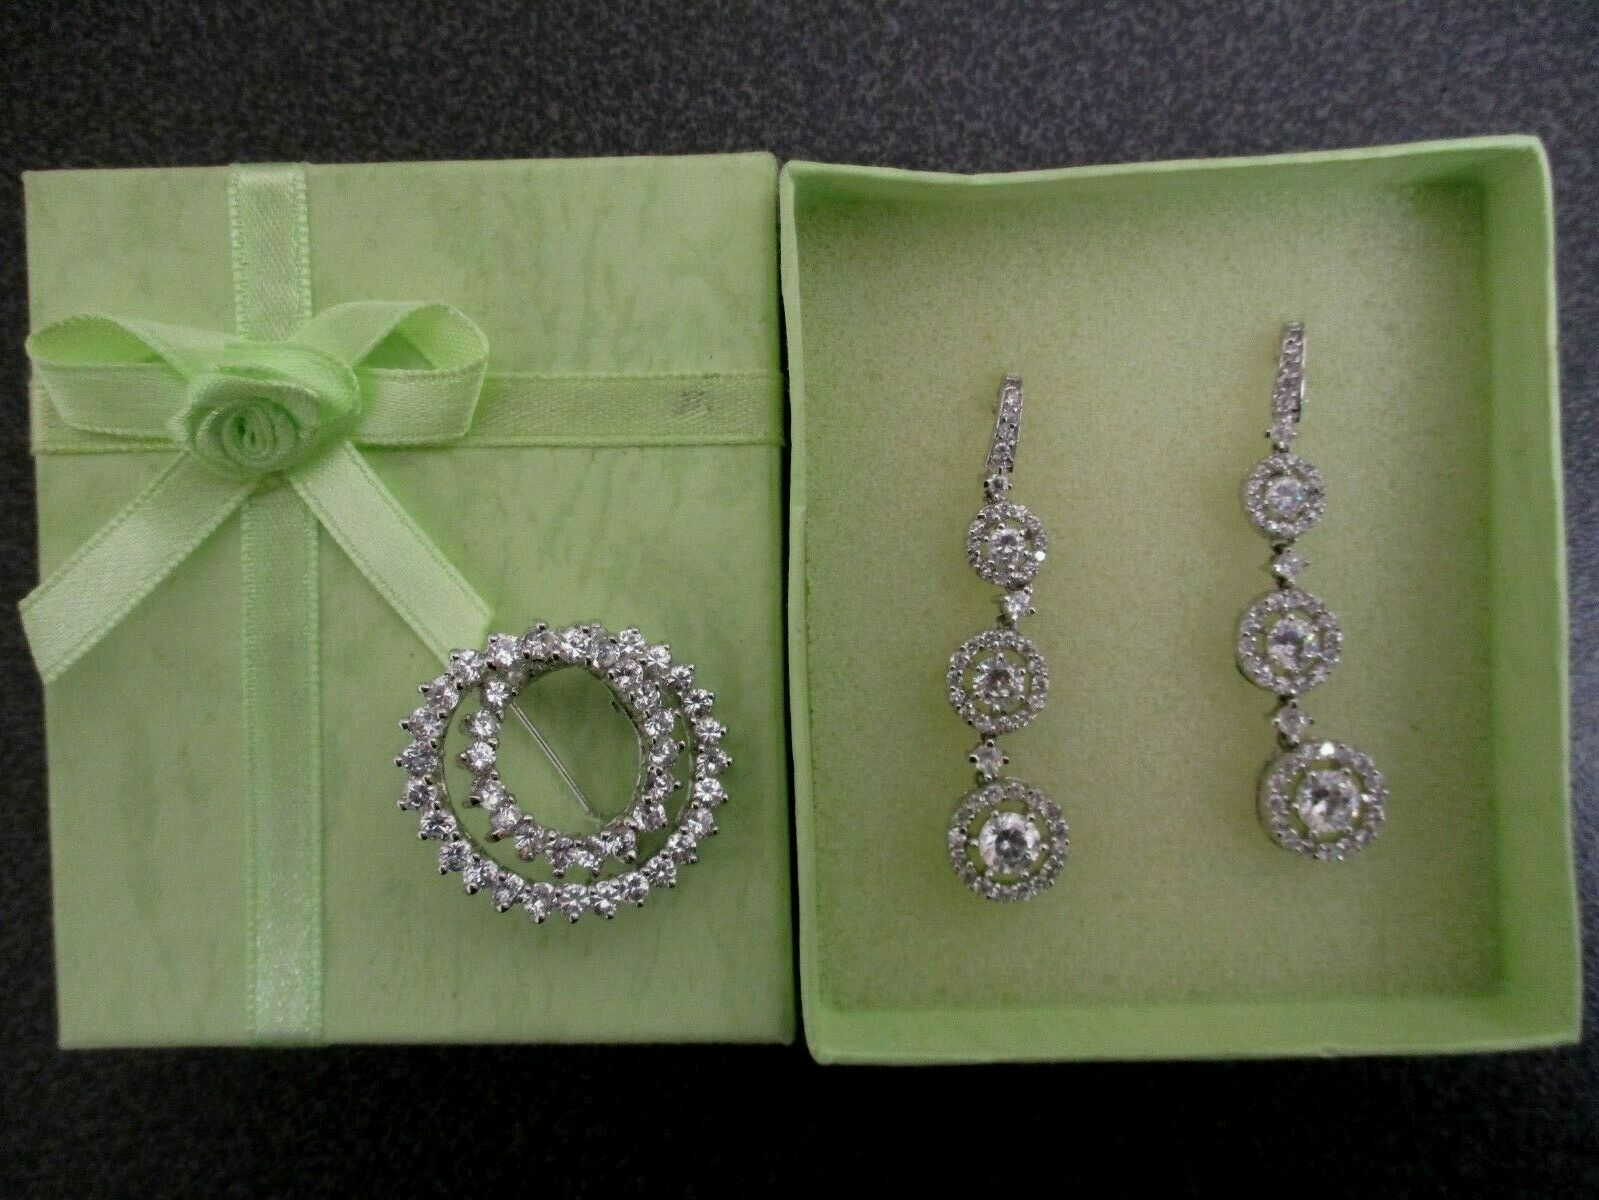 Crystal Rhinestone Drop Earrings and Brooch Pin Set